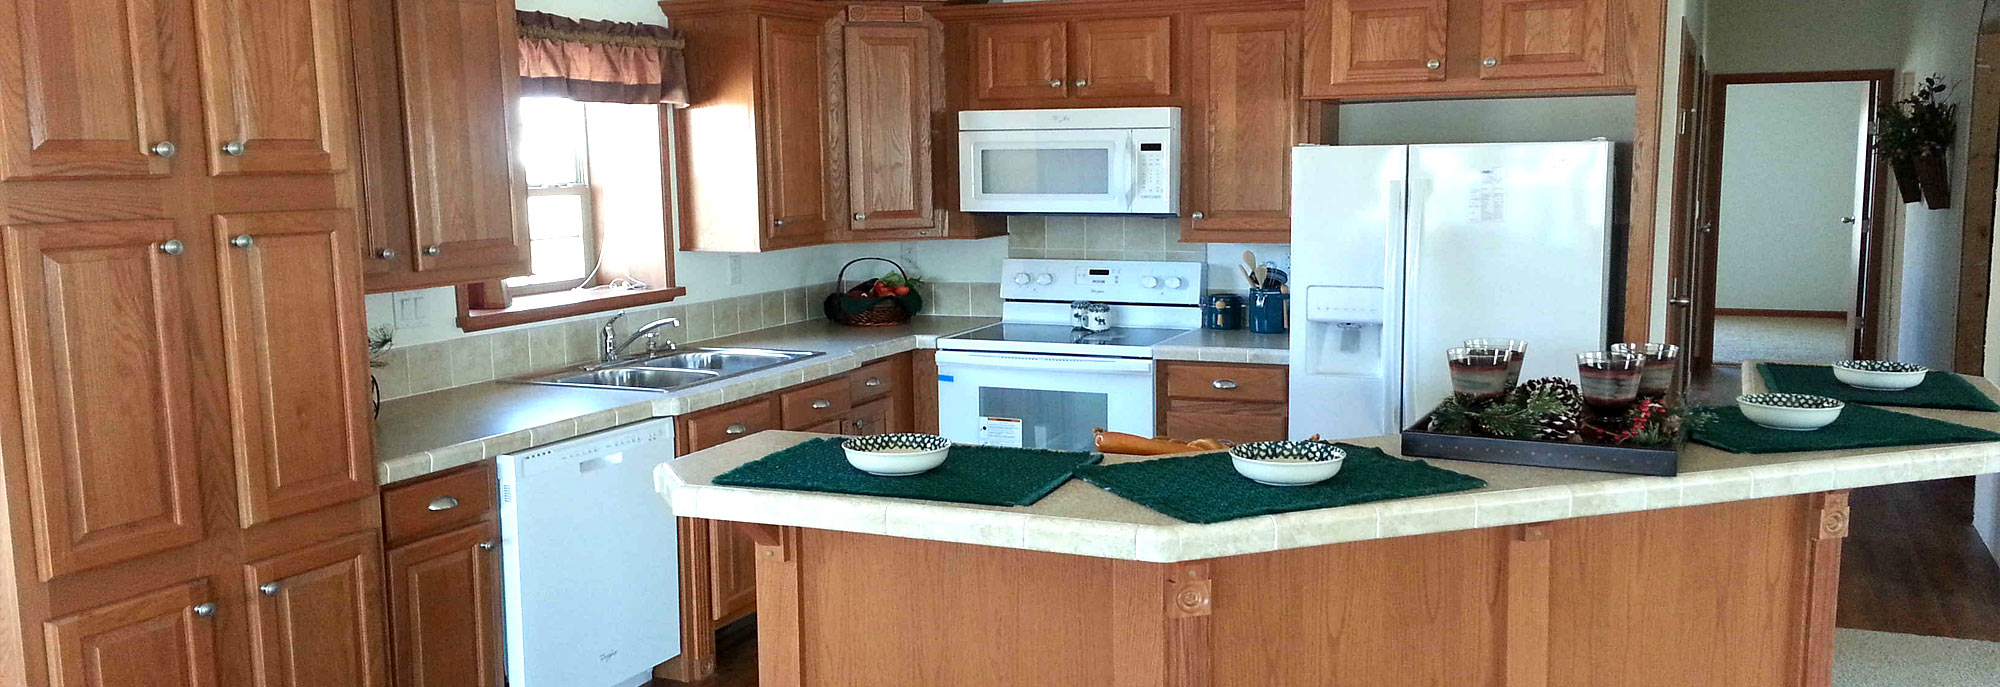 The kitchen of the Kennedy Model Modular Home built by Factory Home Center